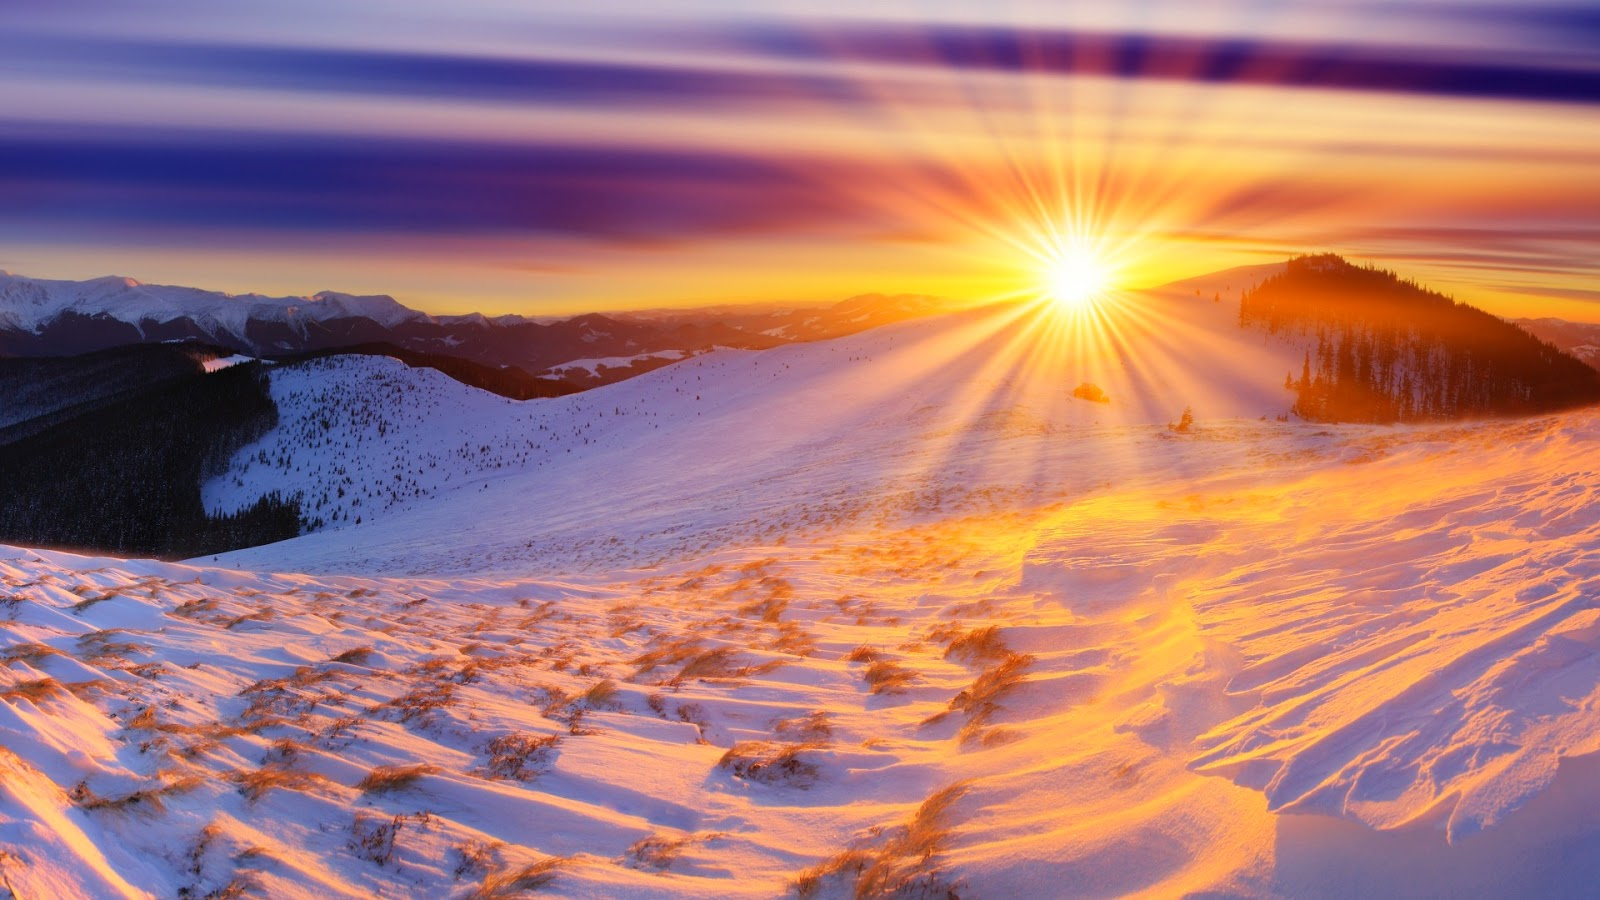 white-mountain-sunrise-beautiful-nature-images-wallpapers